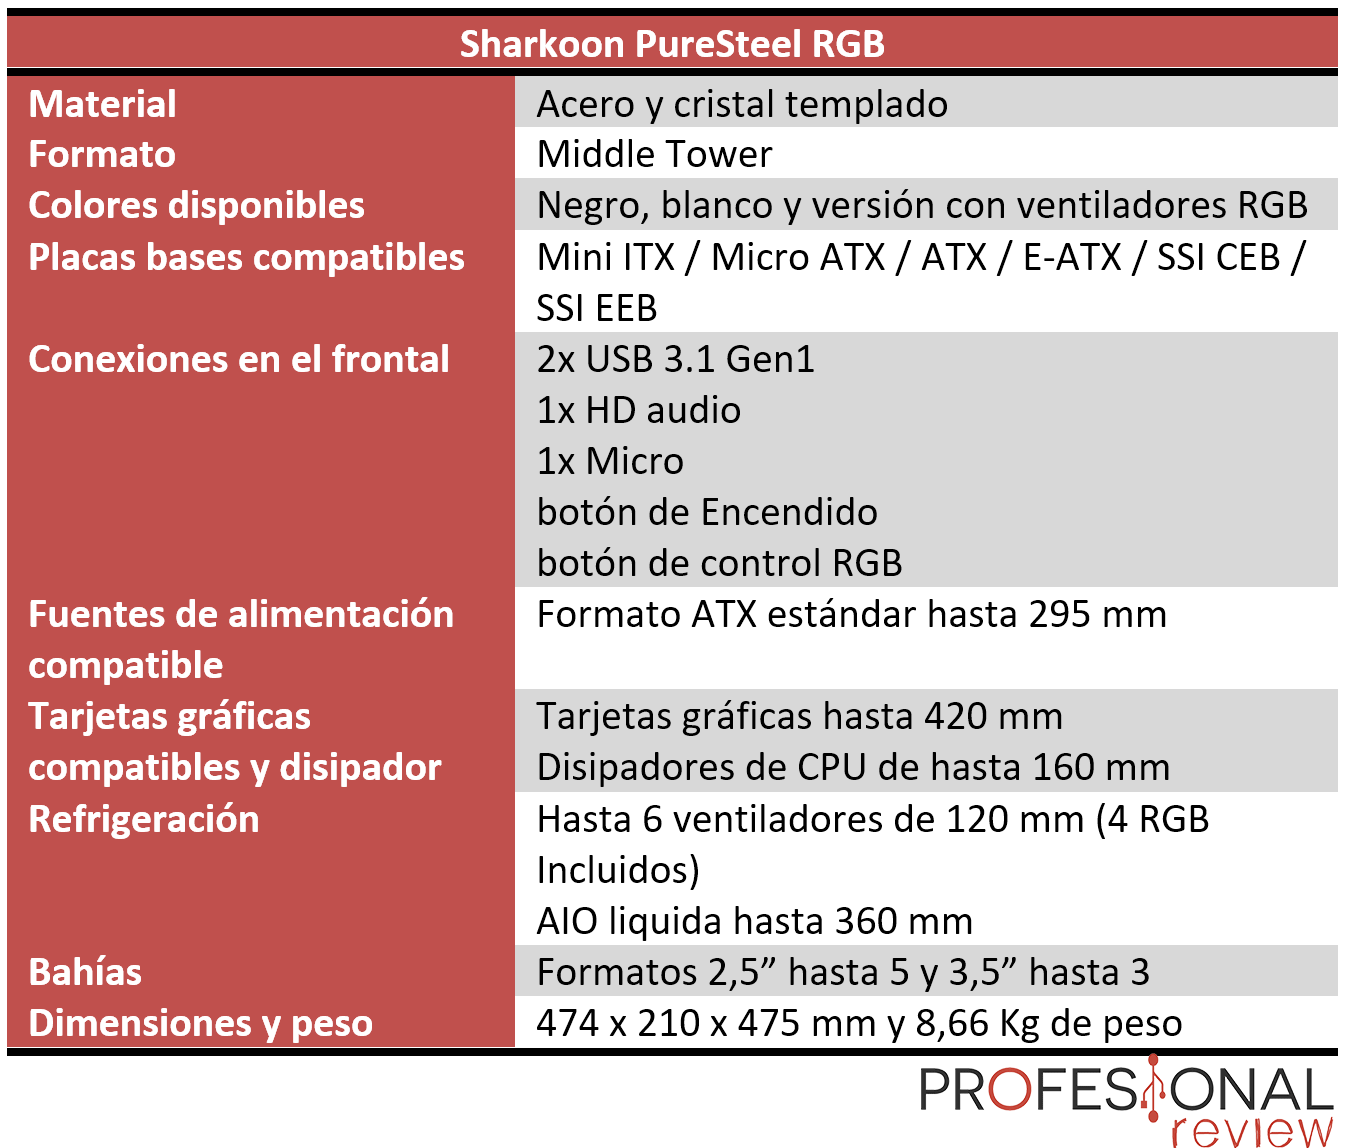 Sharkoon PureSteel RGB características